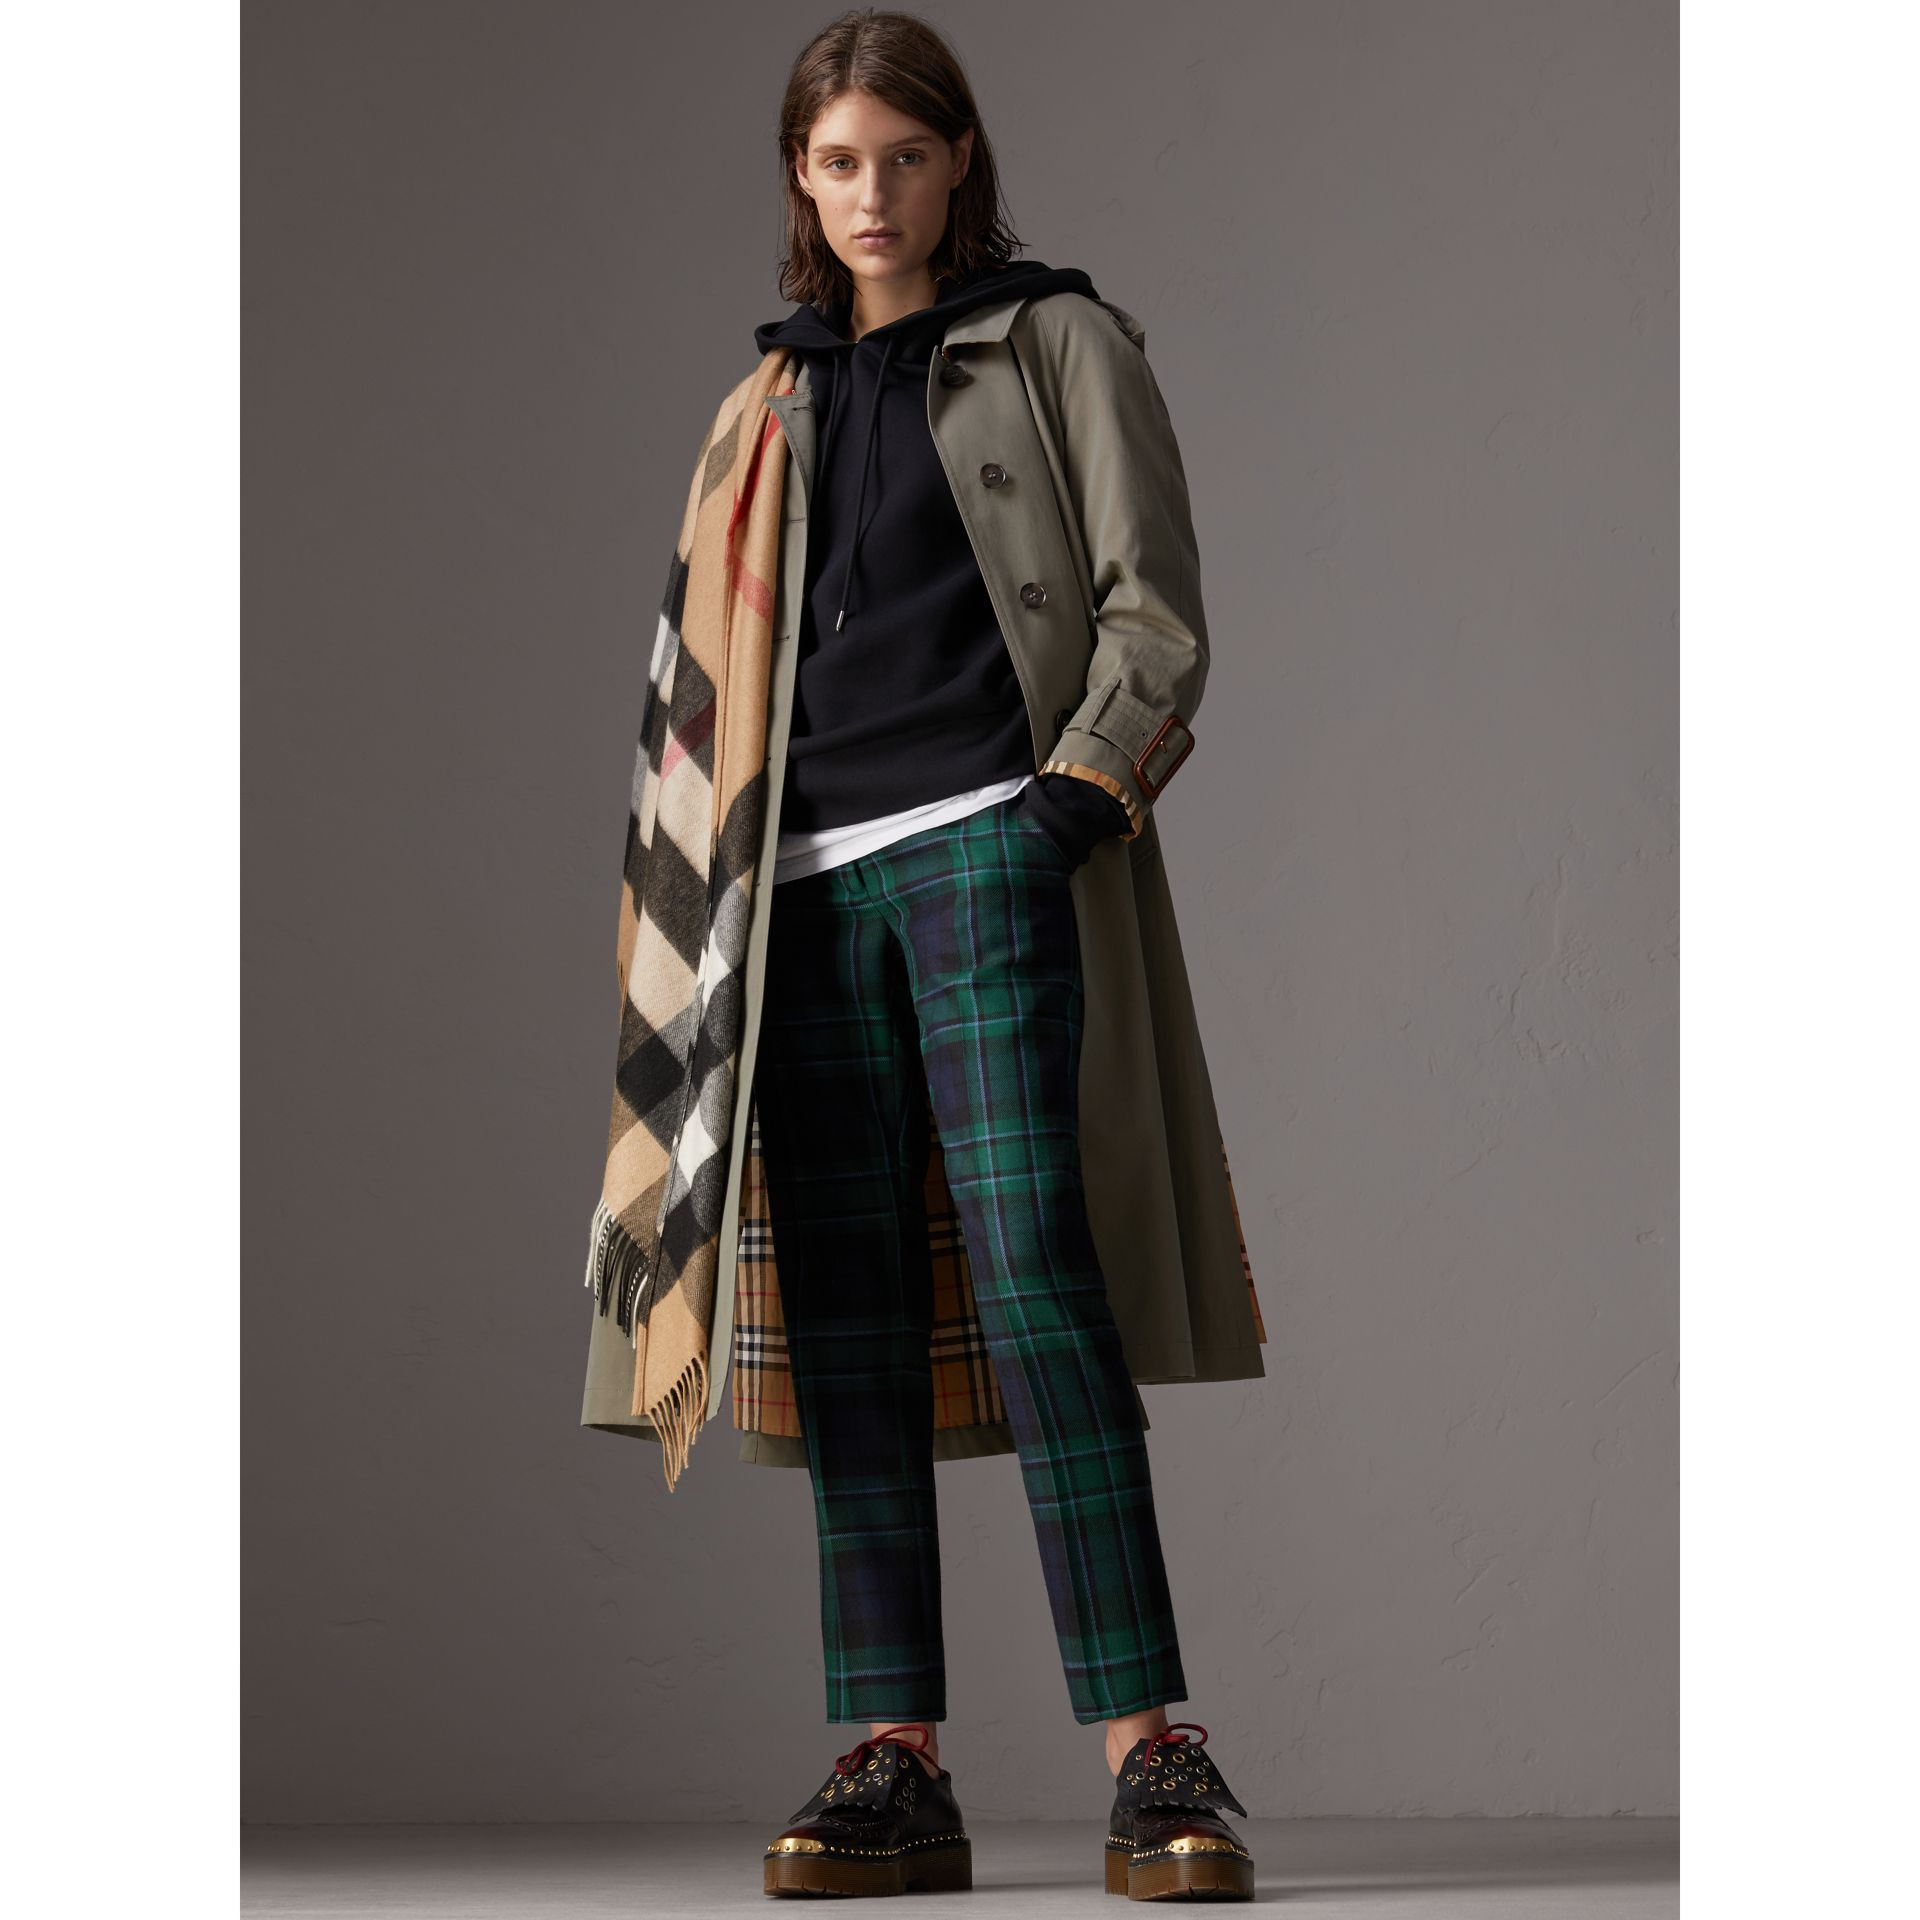 The Burberry Bandana in Check Cashmere in Camel | Burberry - gallery image 2